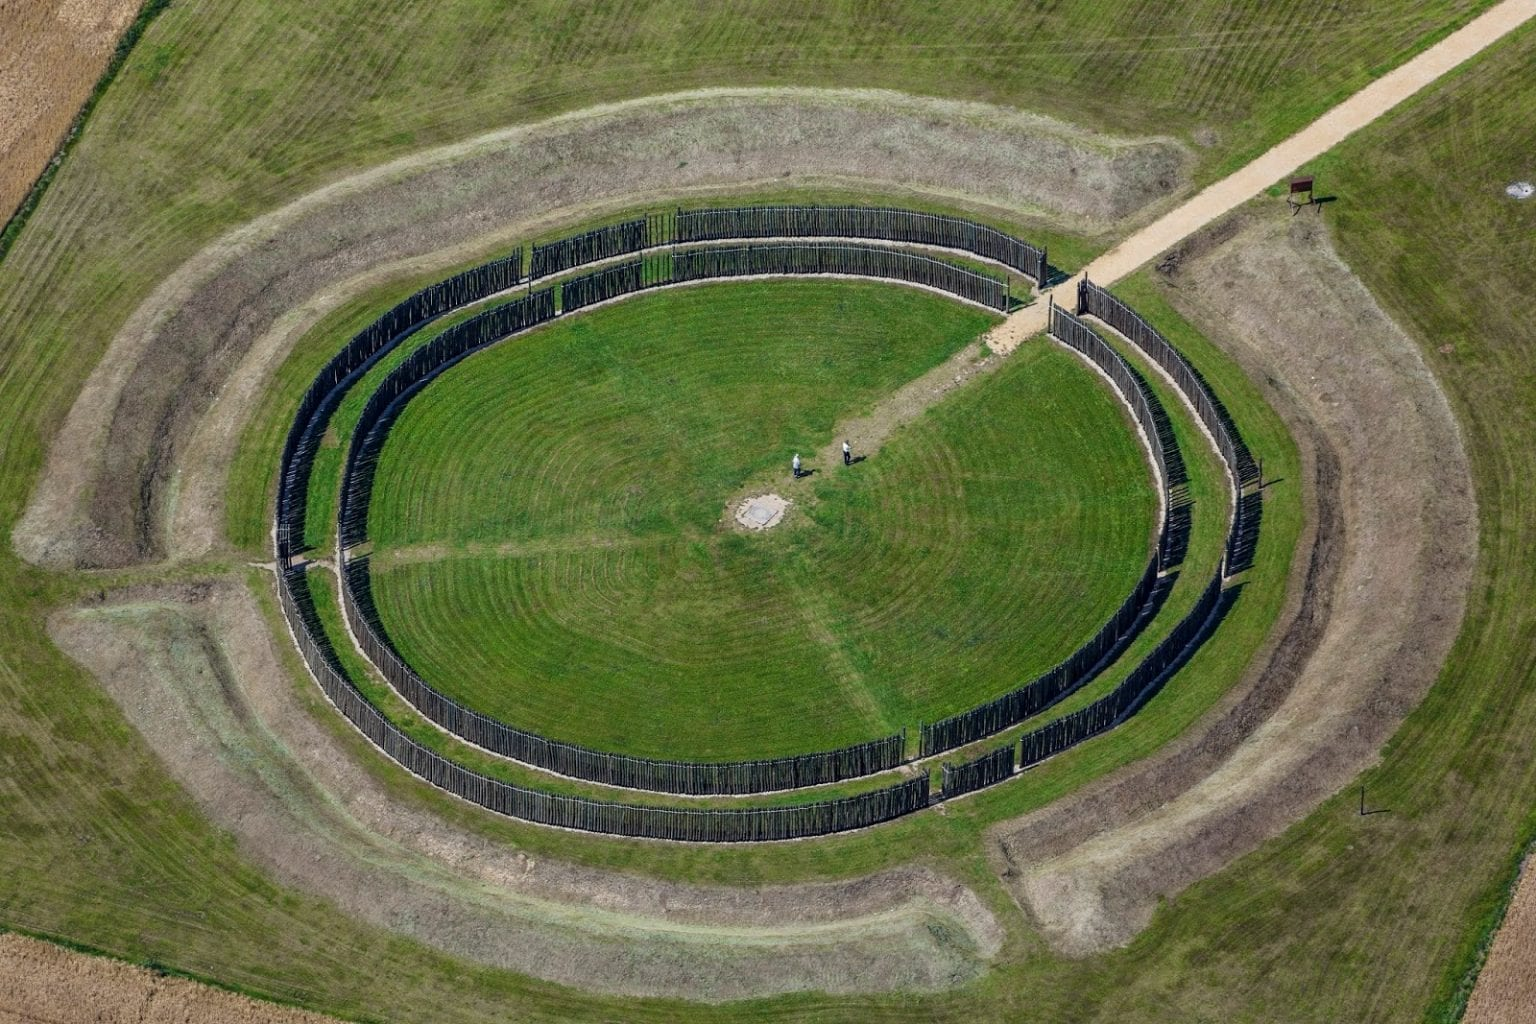 The ancient structure in Germany - the Goseck Circle.